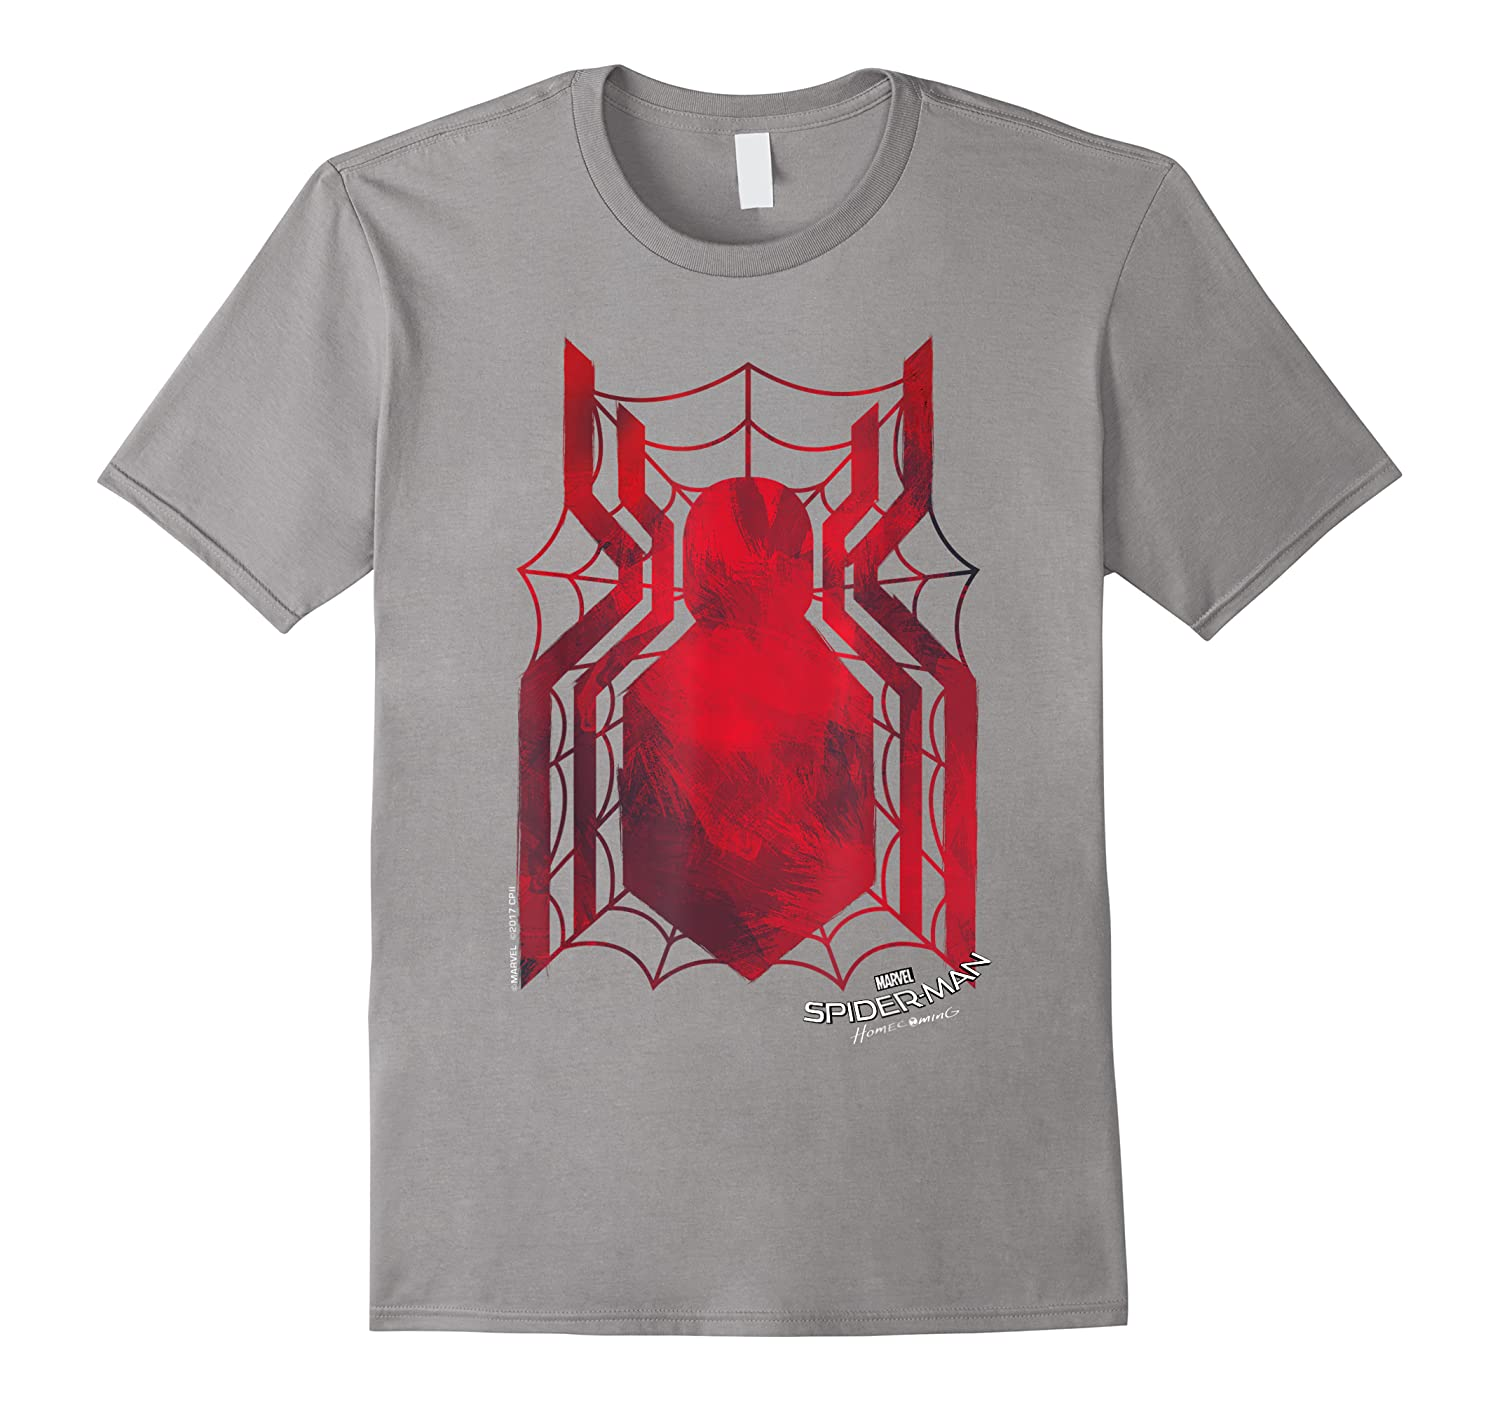 Marvel Spider-man Homecoming Grungy Ink Logo T-shirt C1